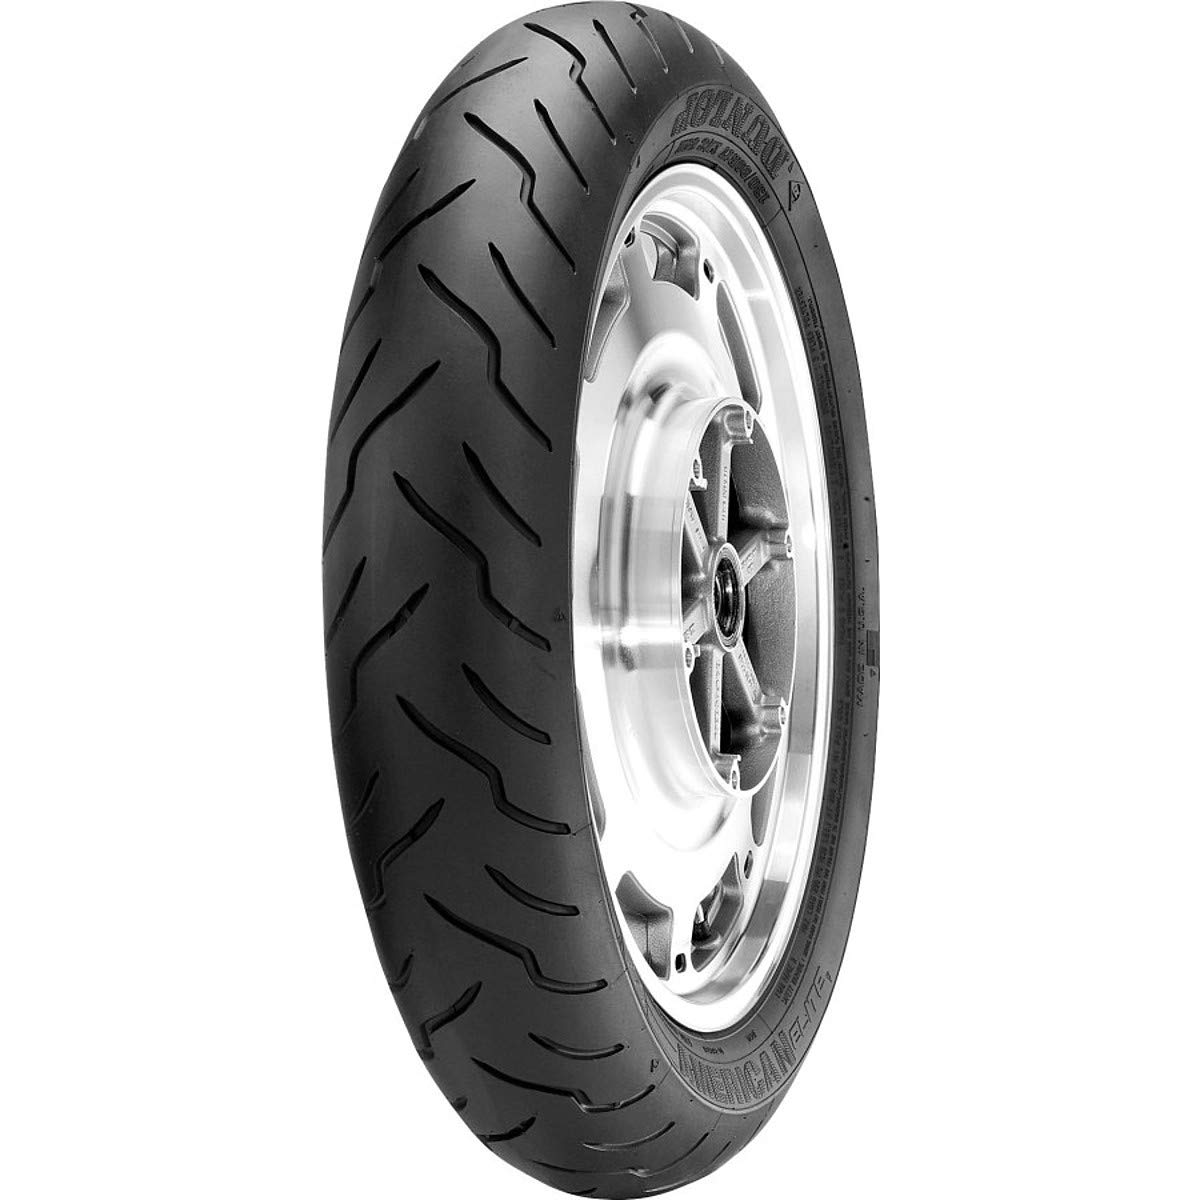 Dunlop American Elite Front Tire (MH90-21)